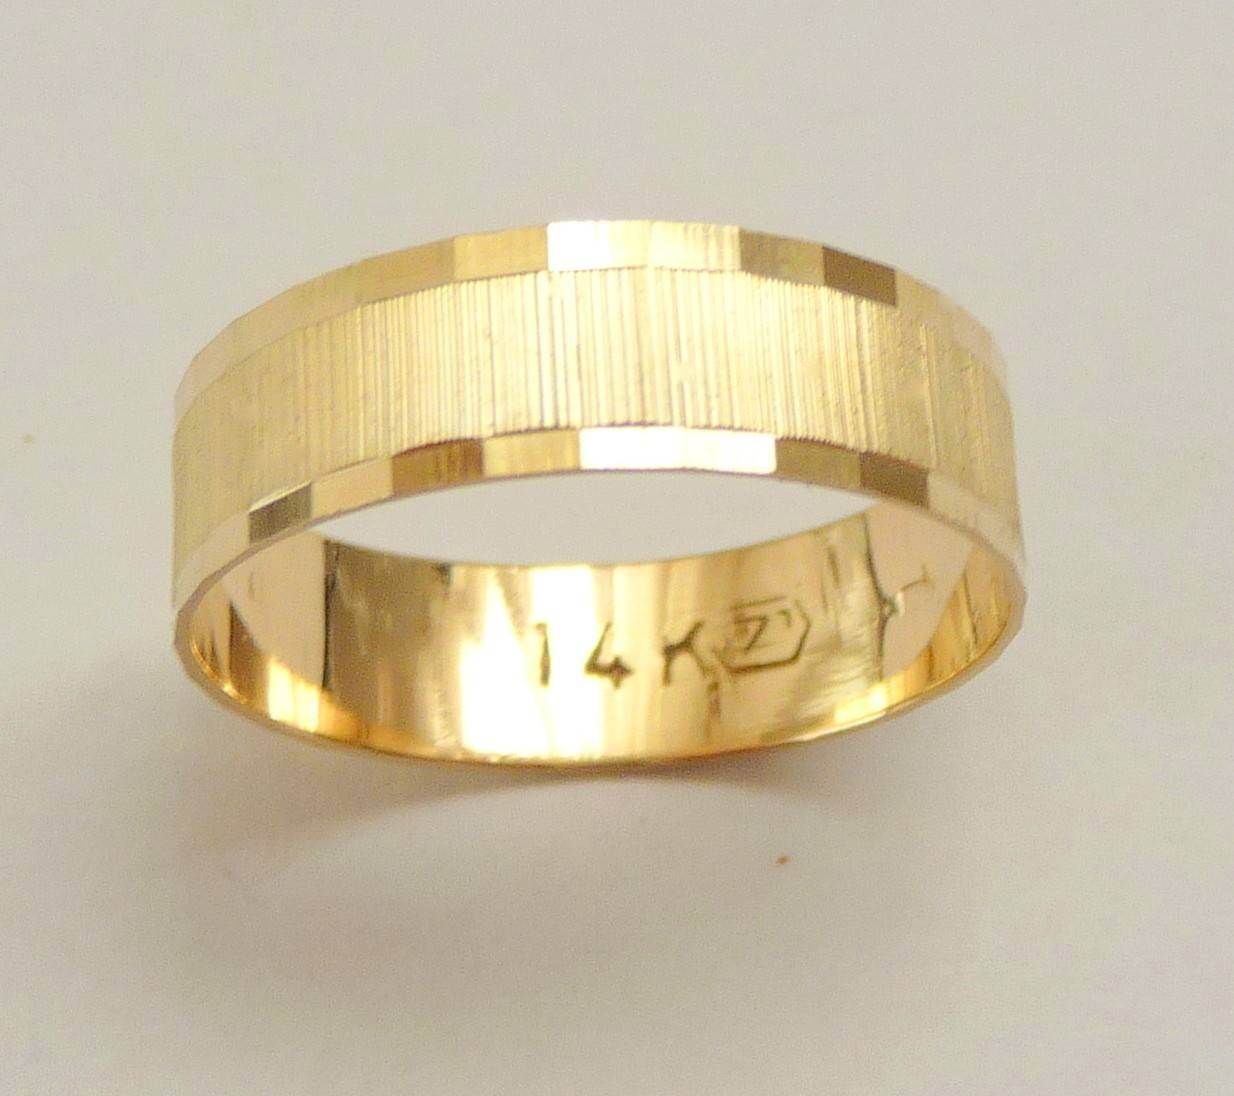 Gold Wedding Band Men Wedding Ring 6Mm Wide Ring For Women Intended For Male Gold Wedding Rings (View 7 of 15)